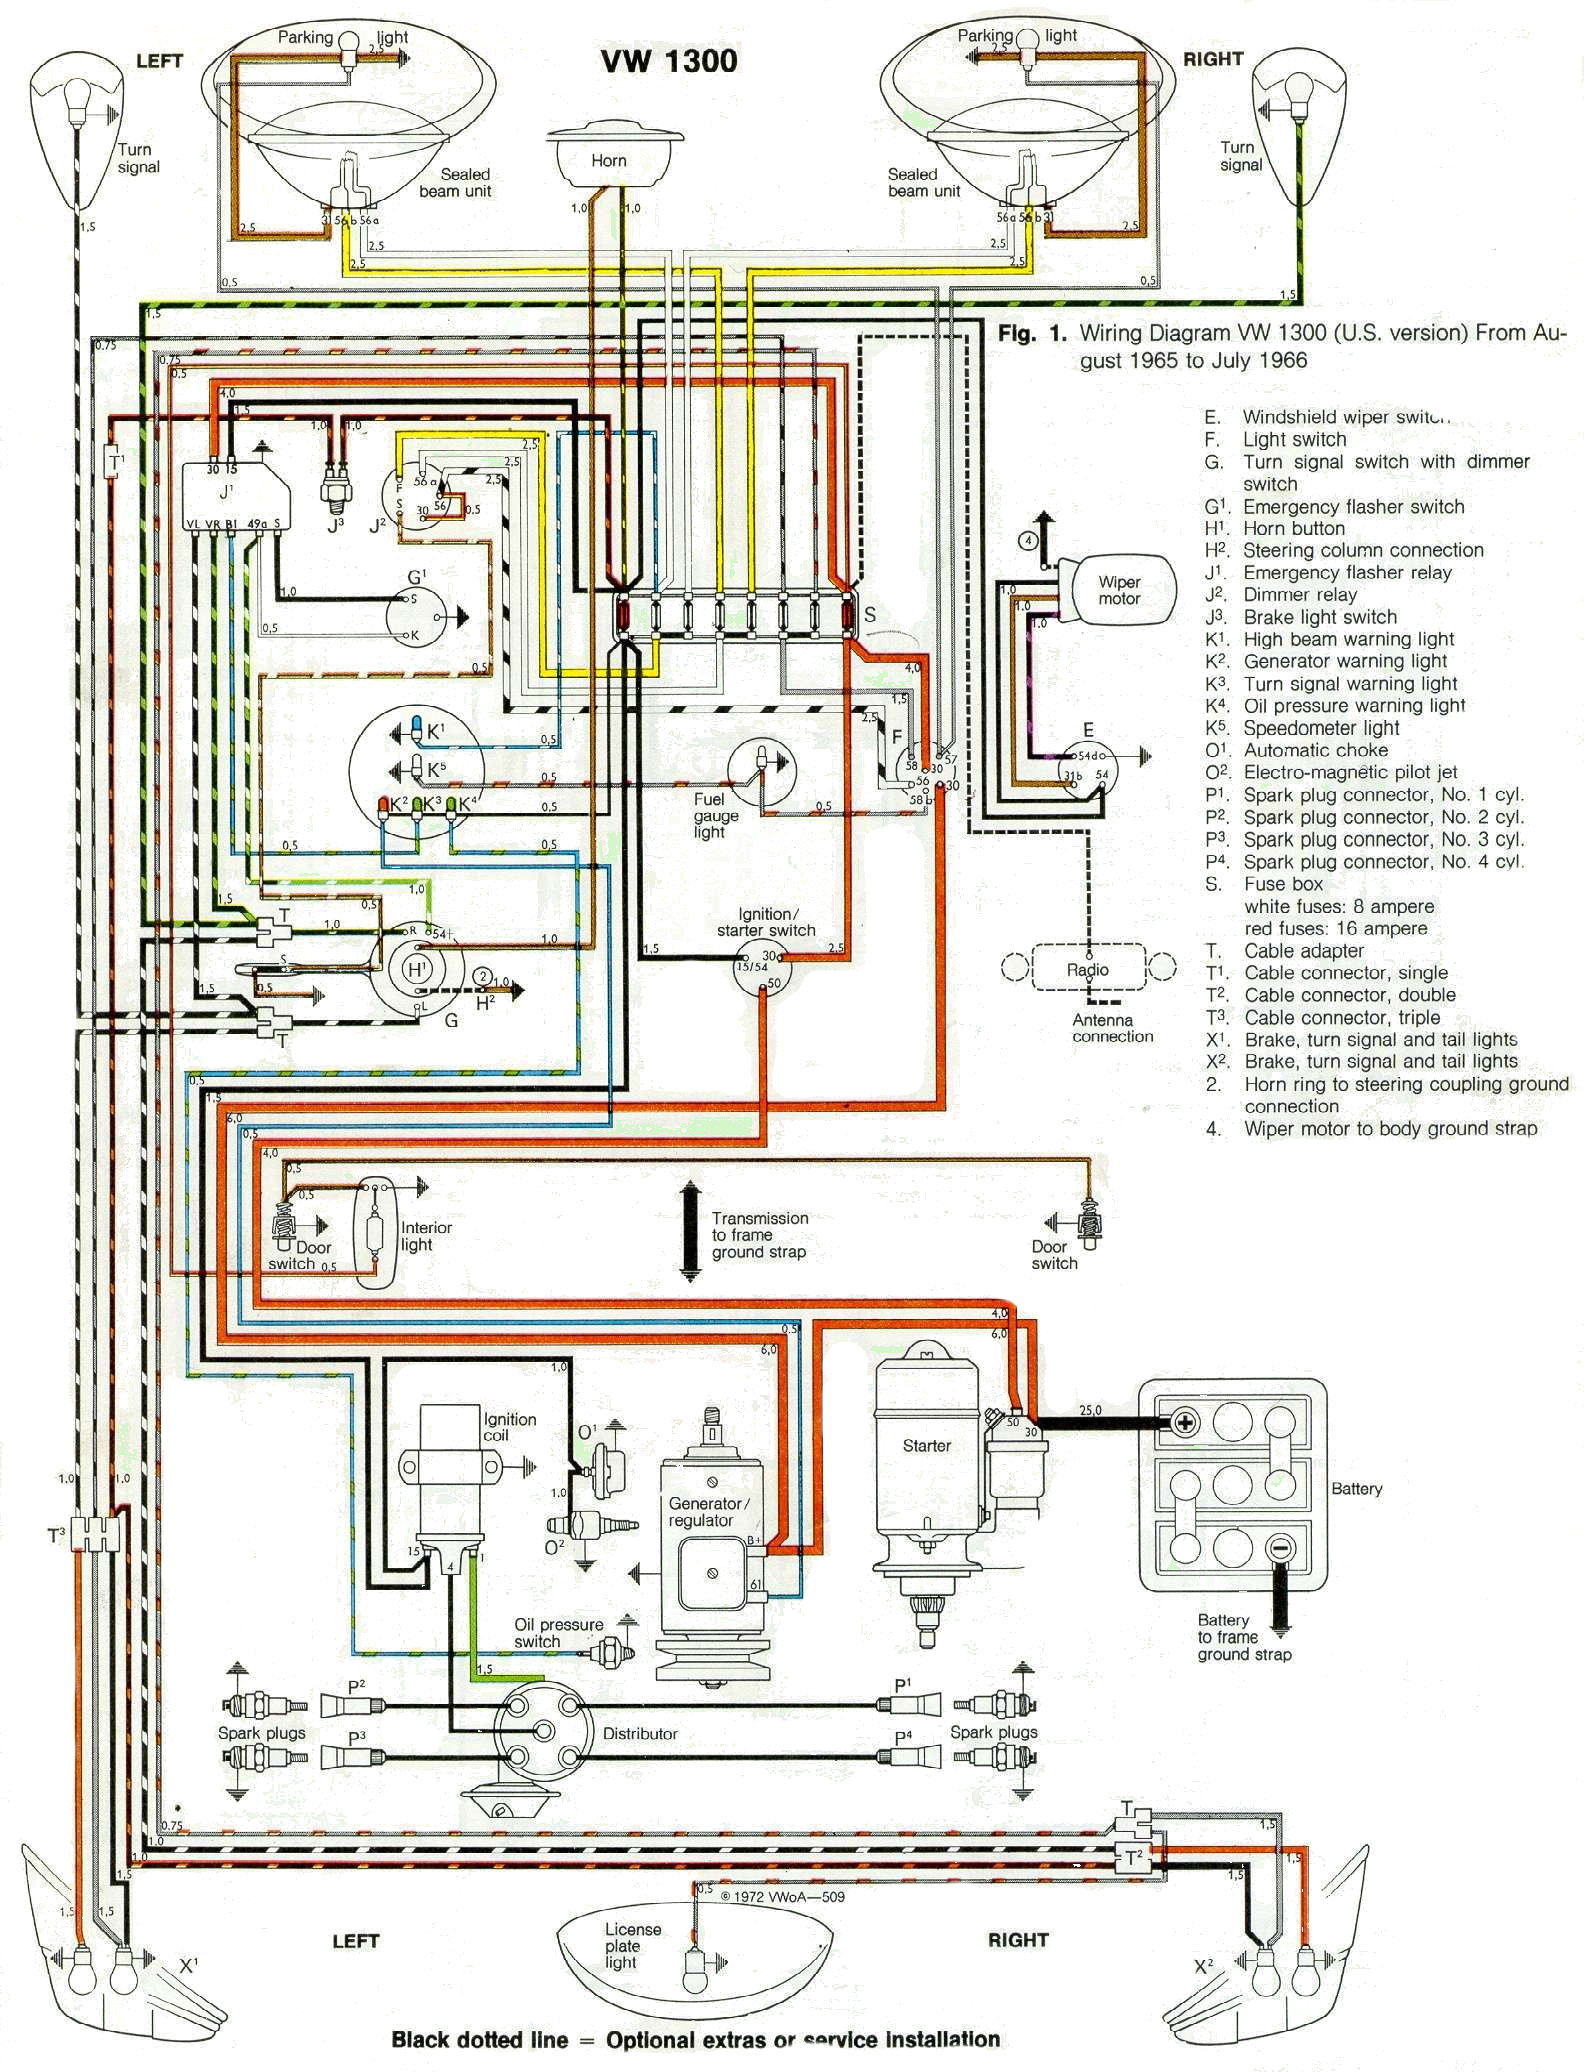 Electrical Diagram Vw Beetle Wiring For Professional Volkswagen Alternator 1966 Rh 1966vwbeetle Com 1970